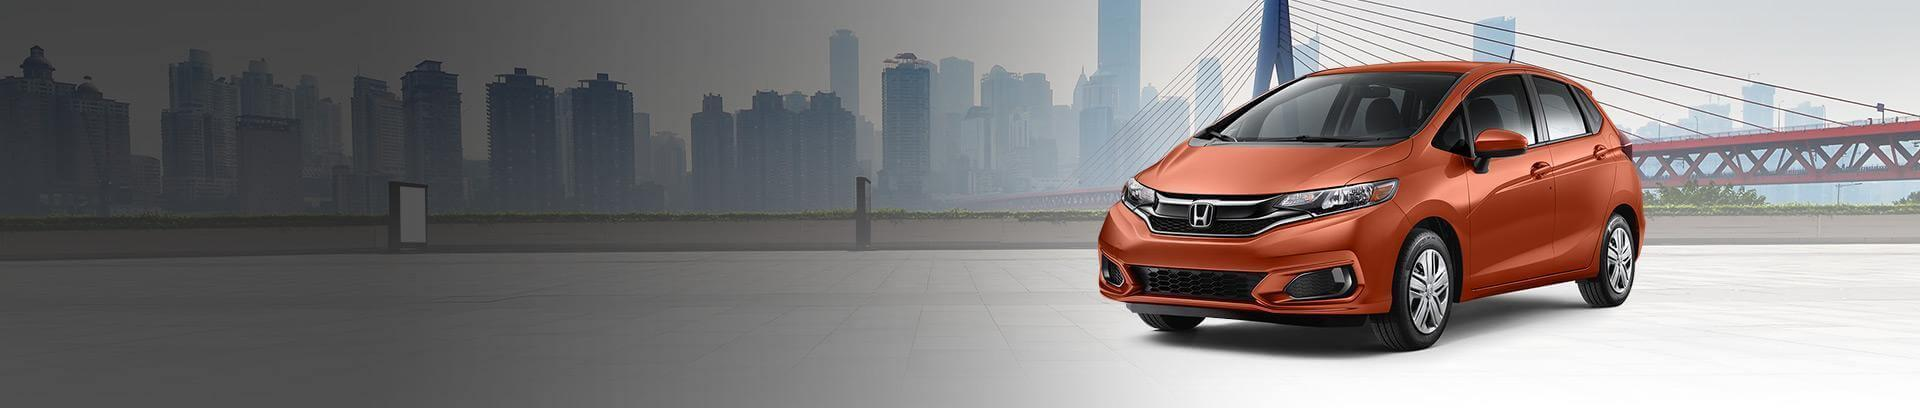 2019 orange honda fit